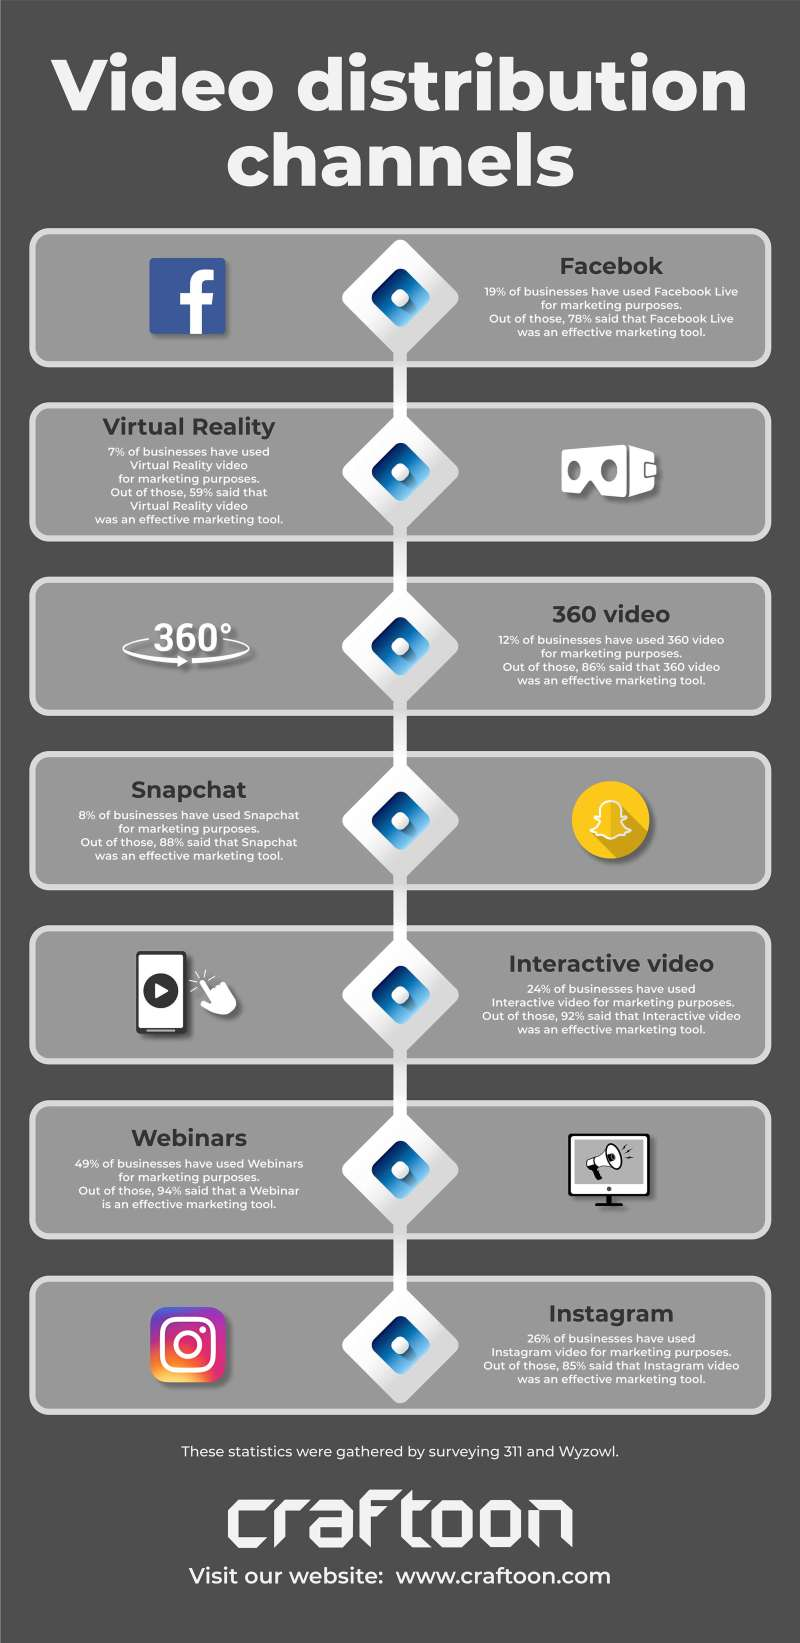 Craftoon - video ditribution channels infographic